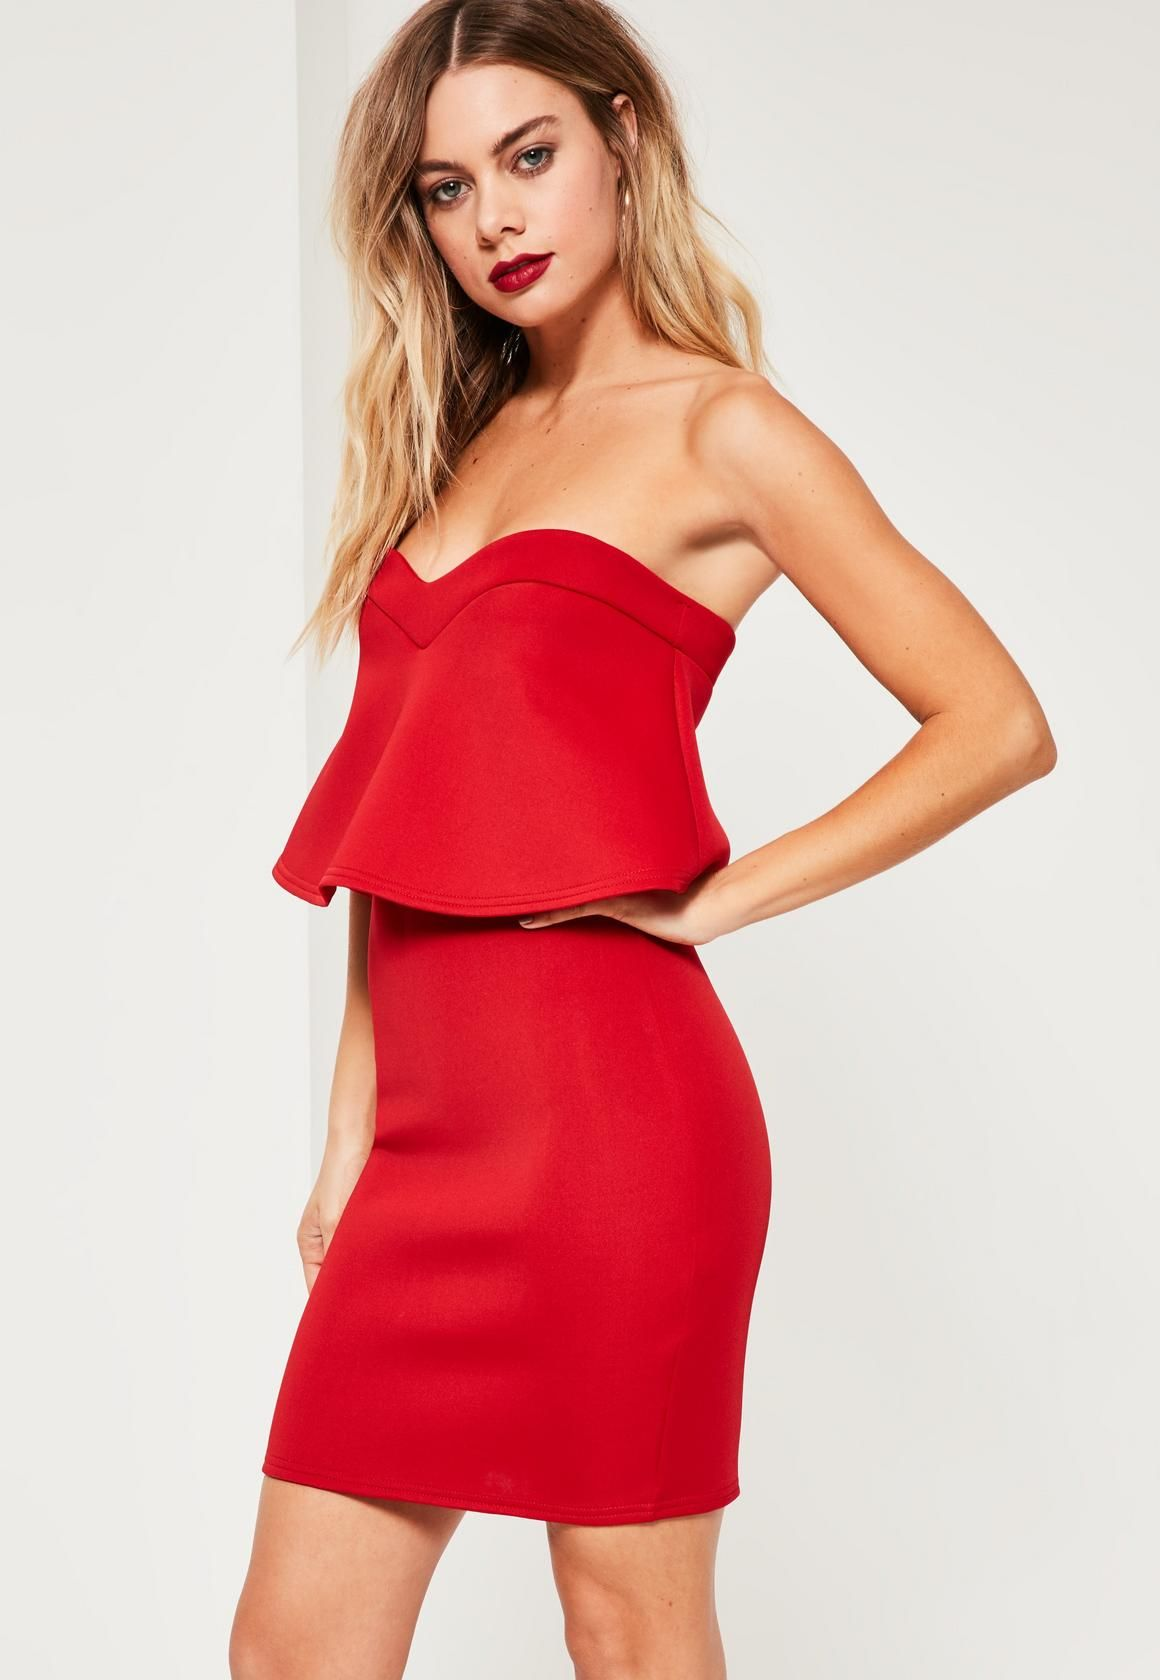 51a658f0264b Missguided - Robe courte rouge bustier à volants